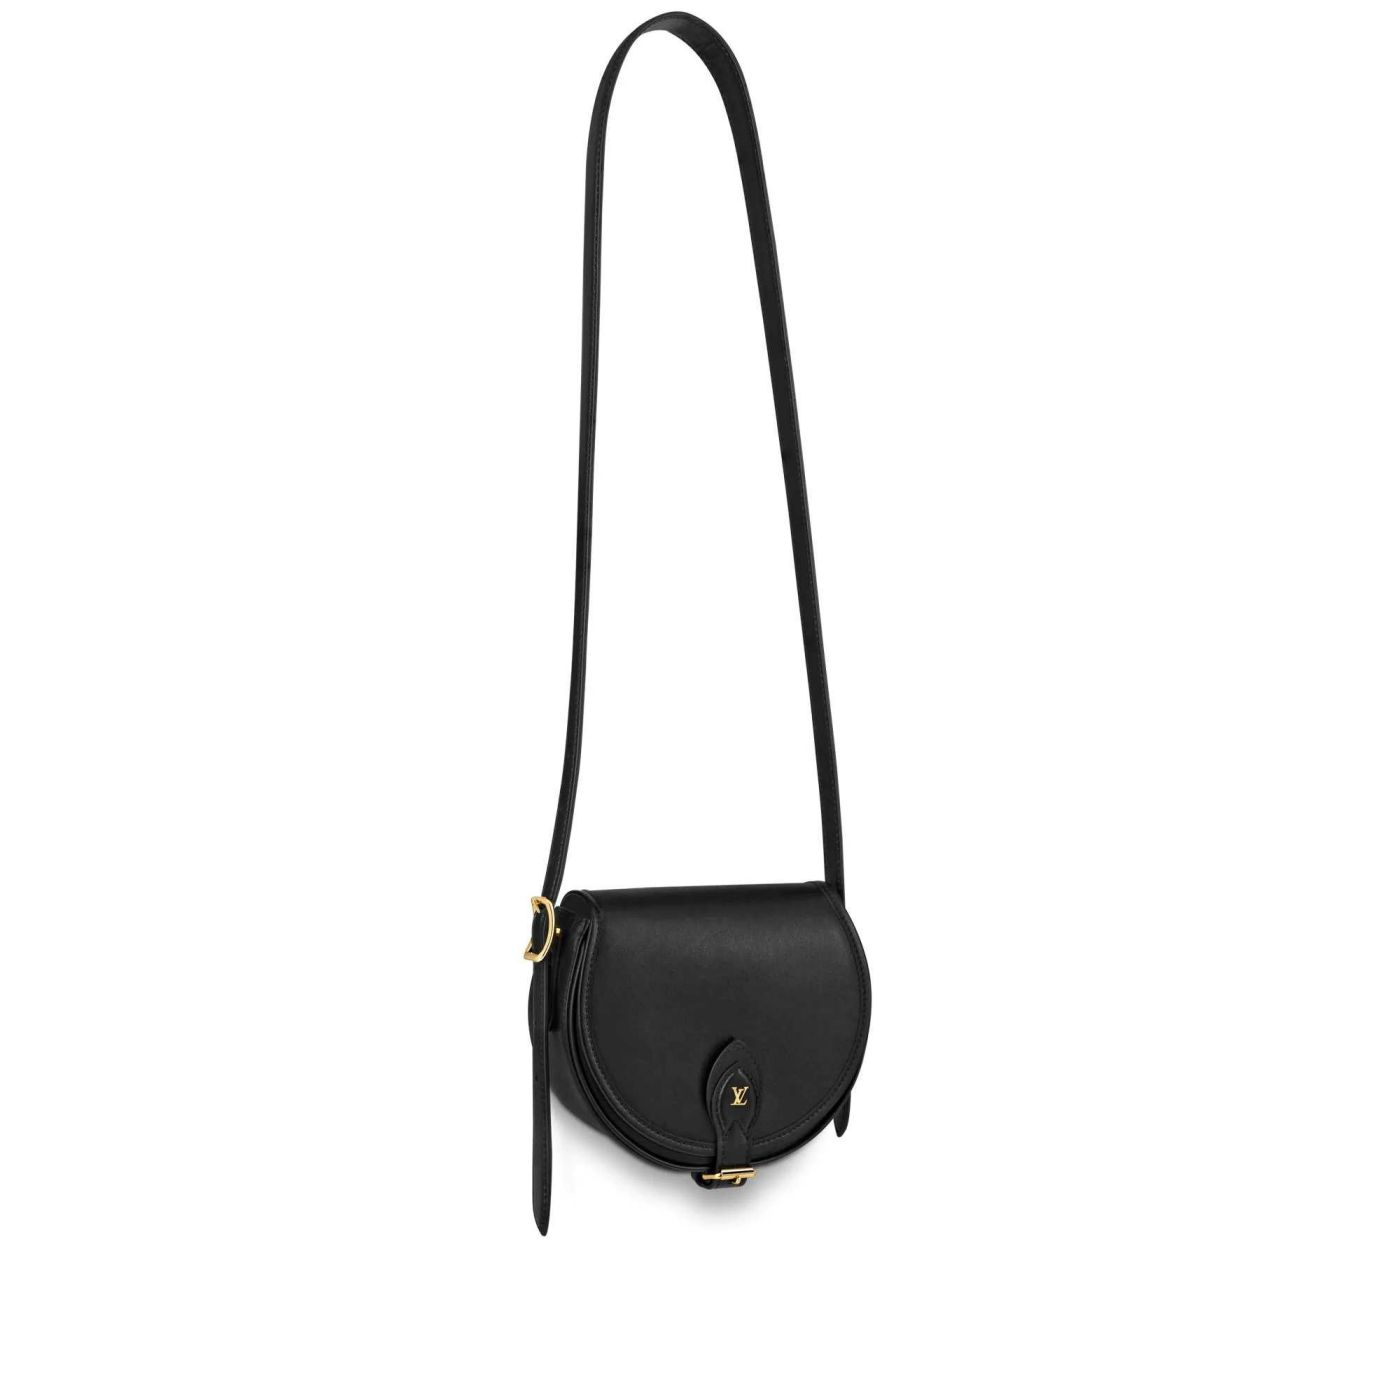 LV 2019 NEW Tambourin Leather Saddle M55505 Women Shoulder Bags